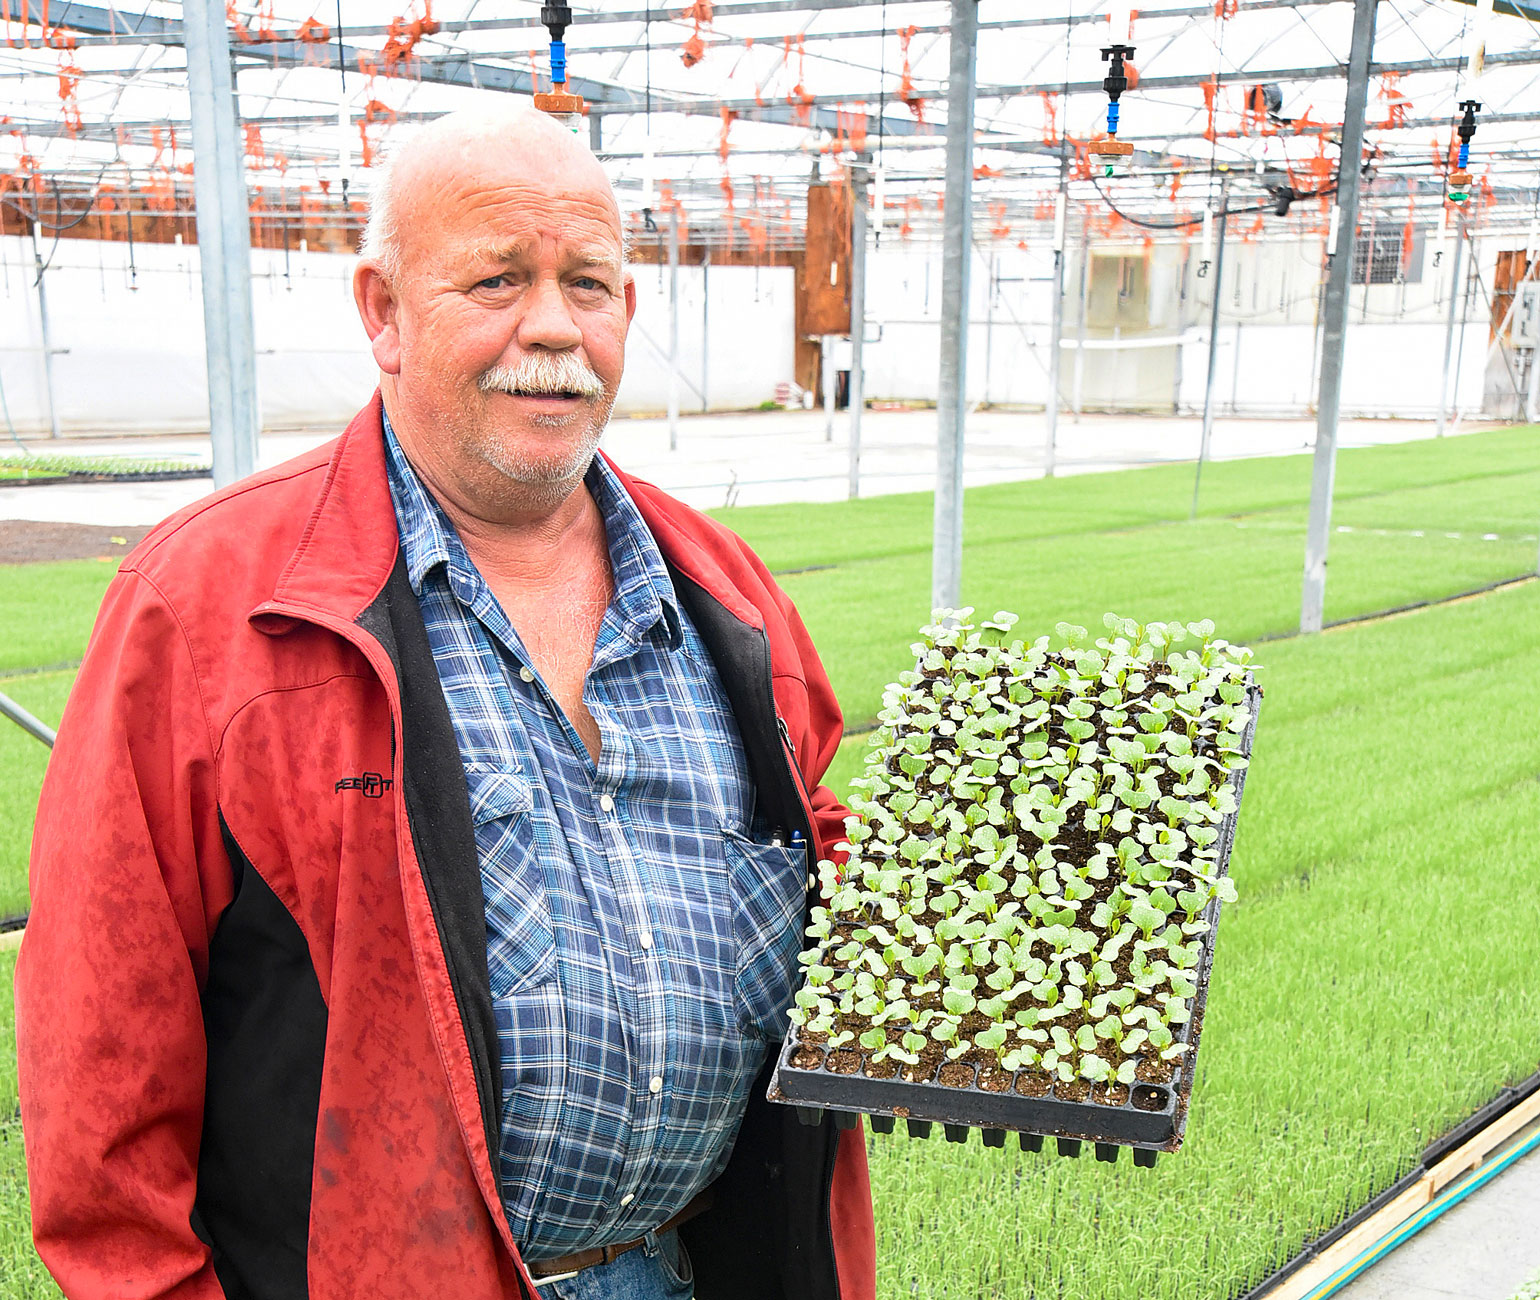 Daniel Riner, owner of Triple P Farms, holds up a tray of germinated coated seeds